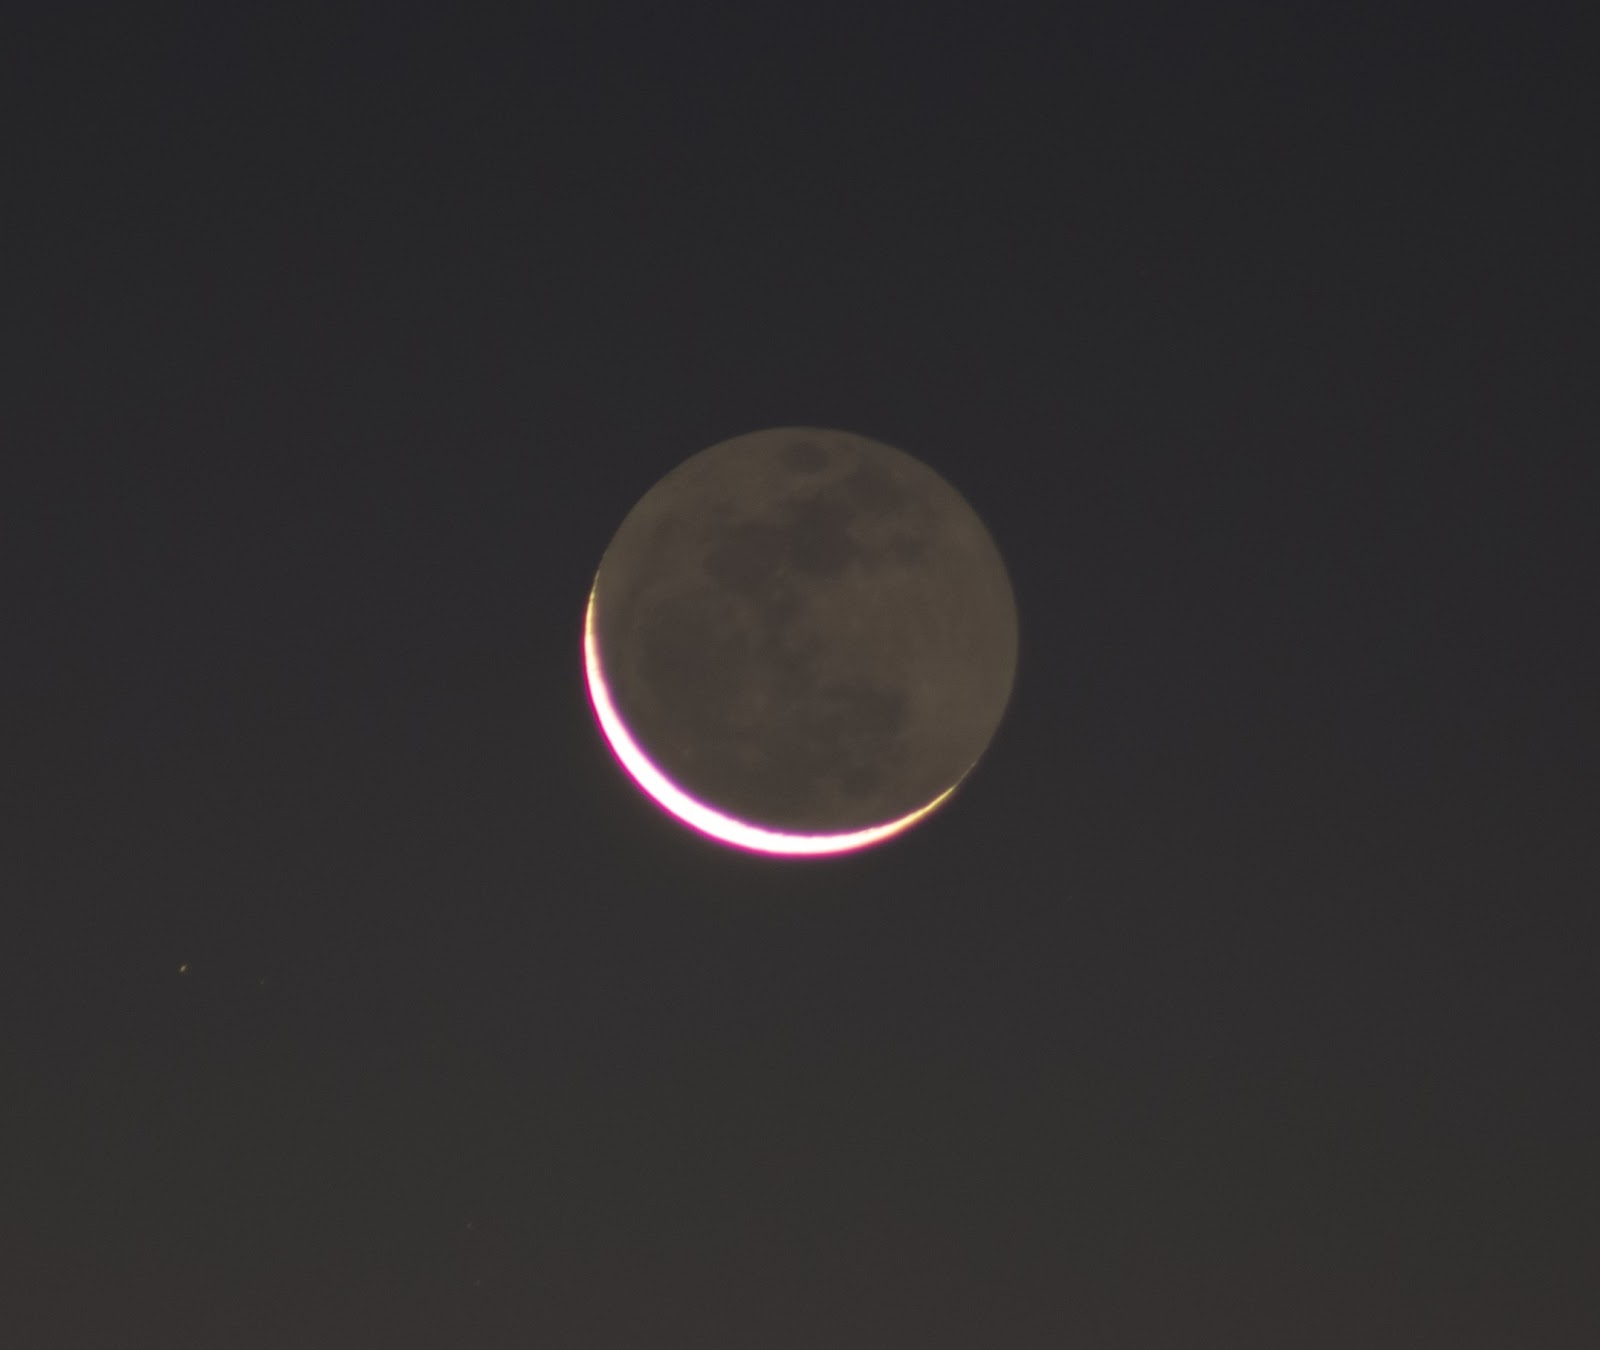 3% crescent moon with earthshine